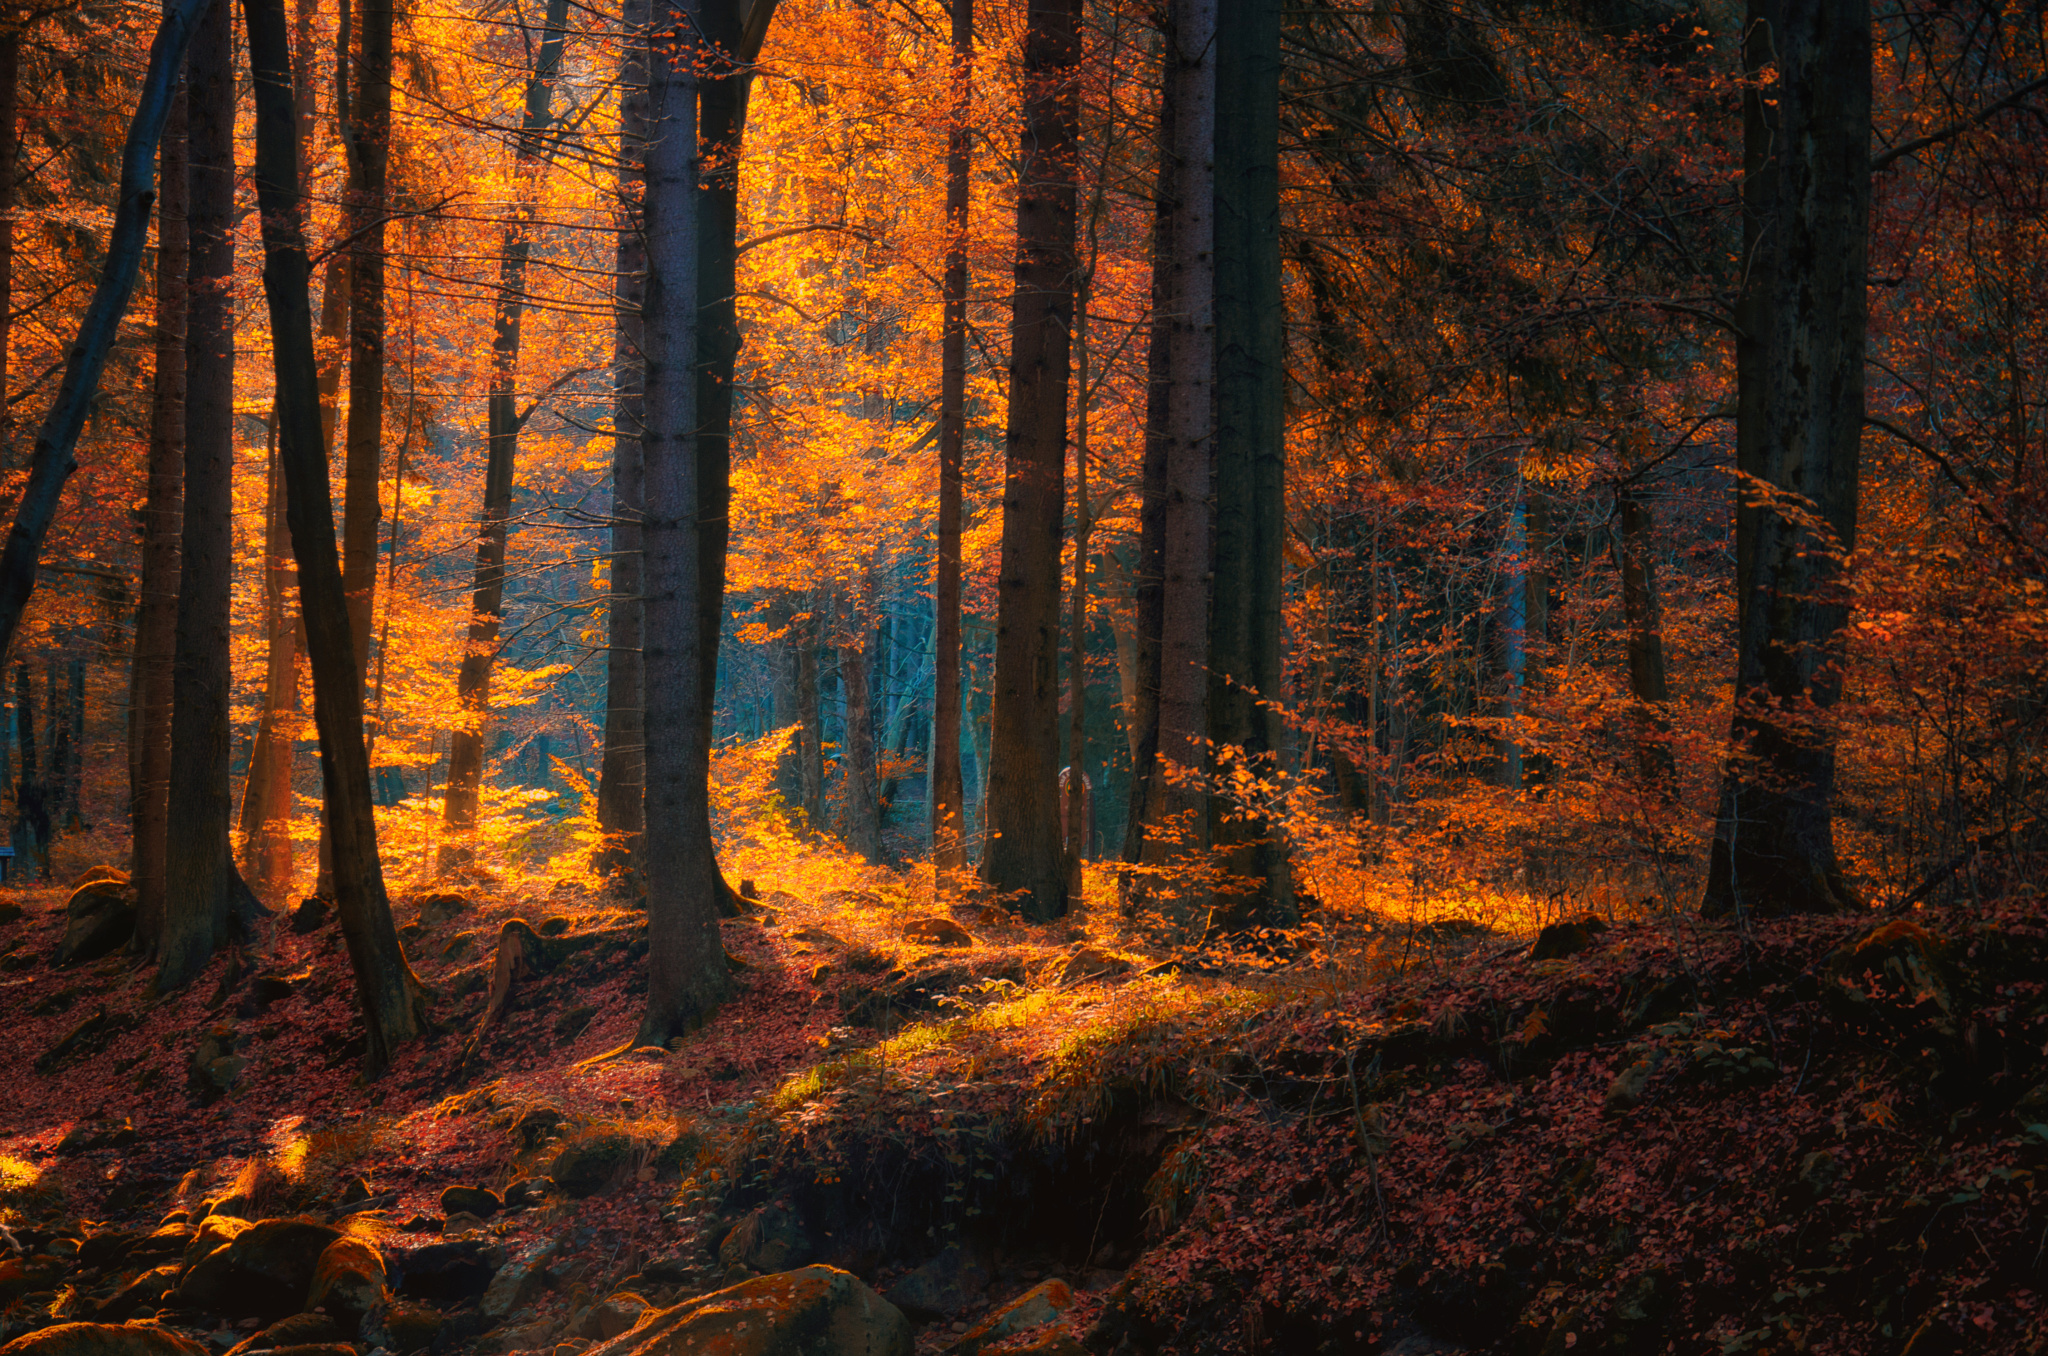 Dark Fall Iphone Wallpaper Autumn Forest Hd Wallpaper Background Image 2048x1356